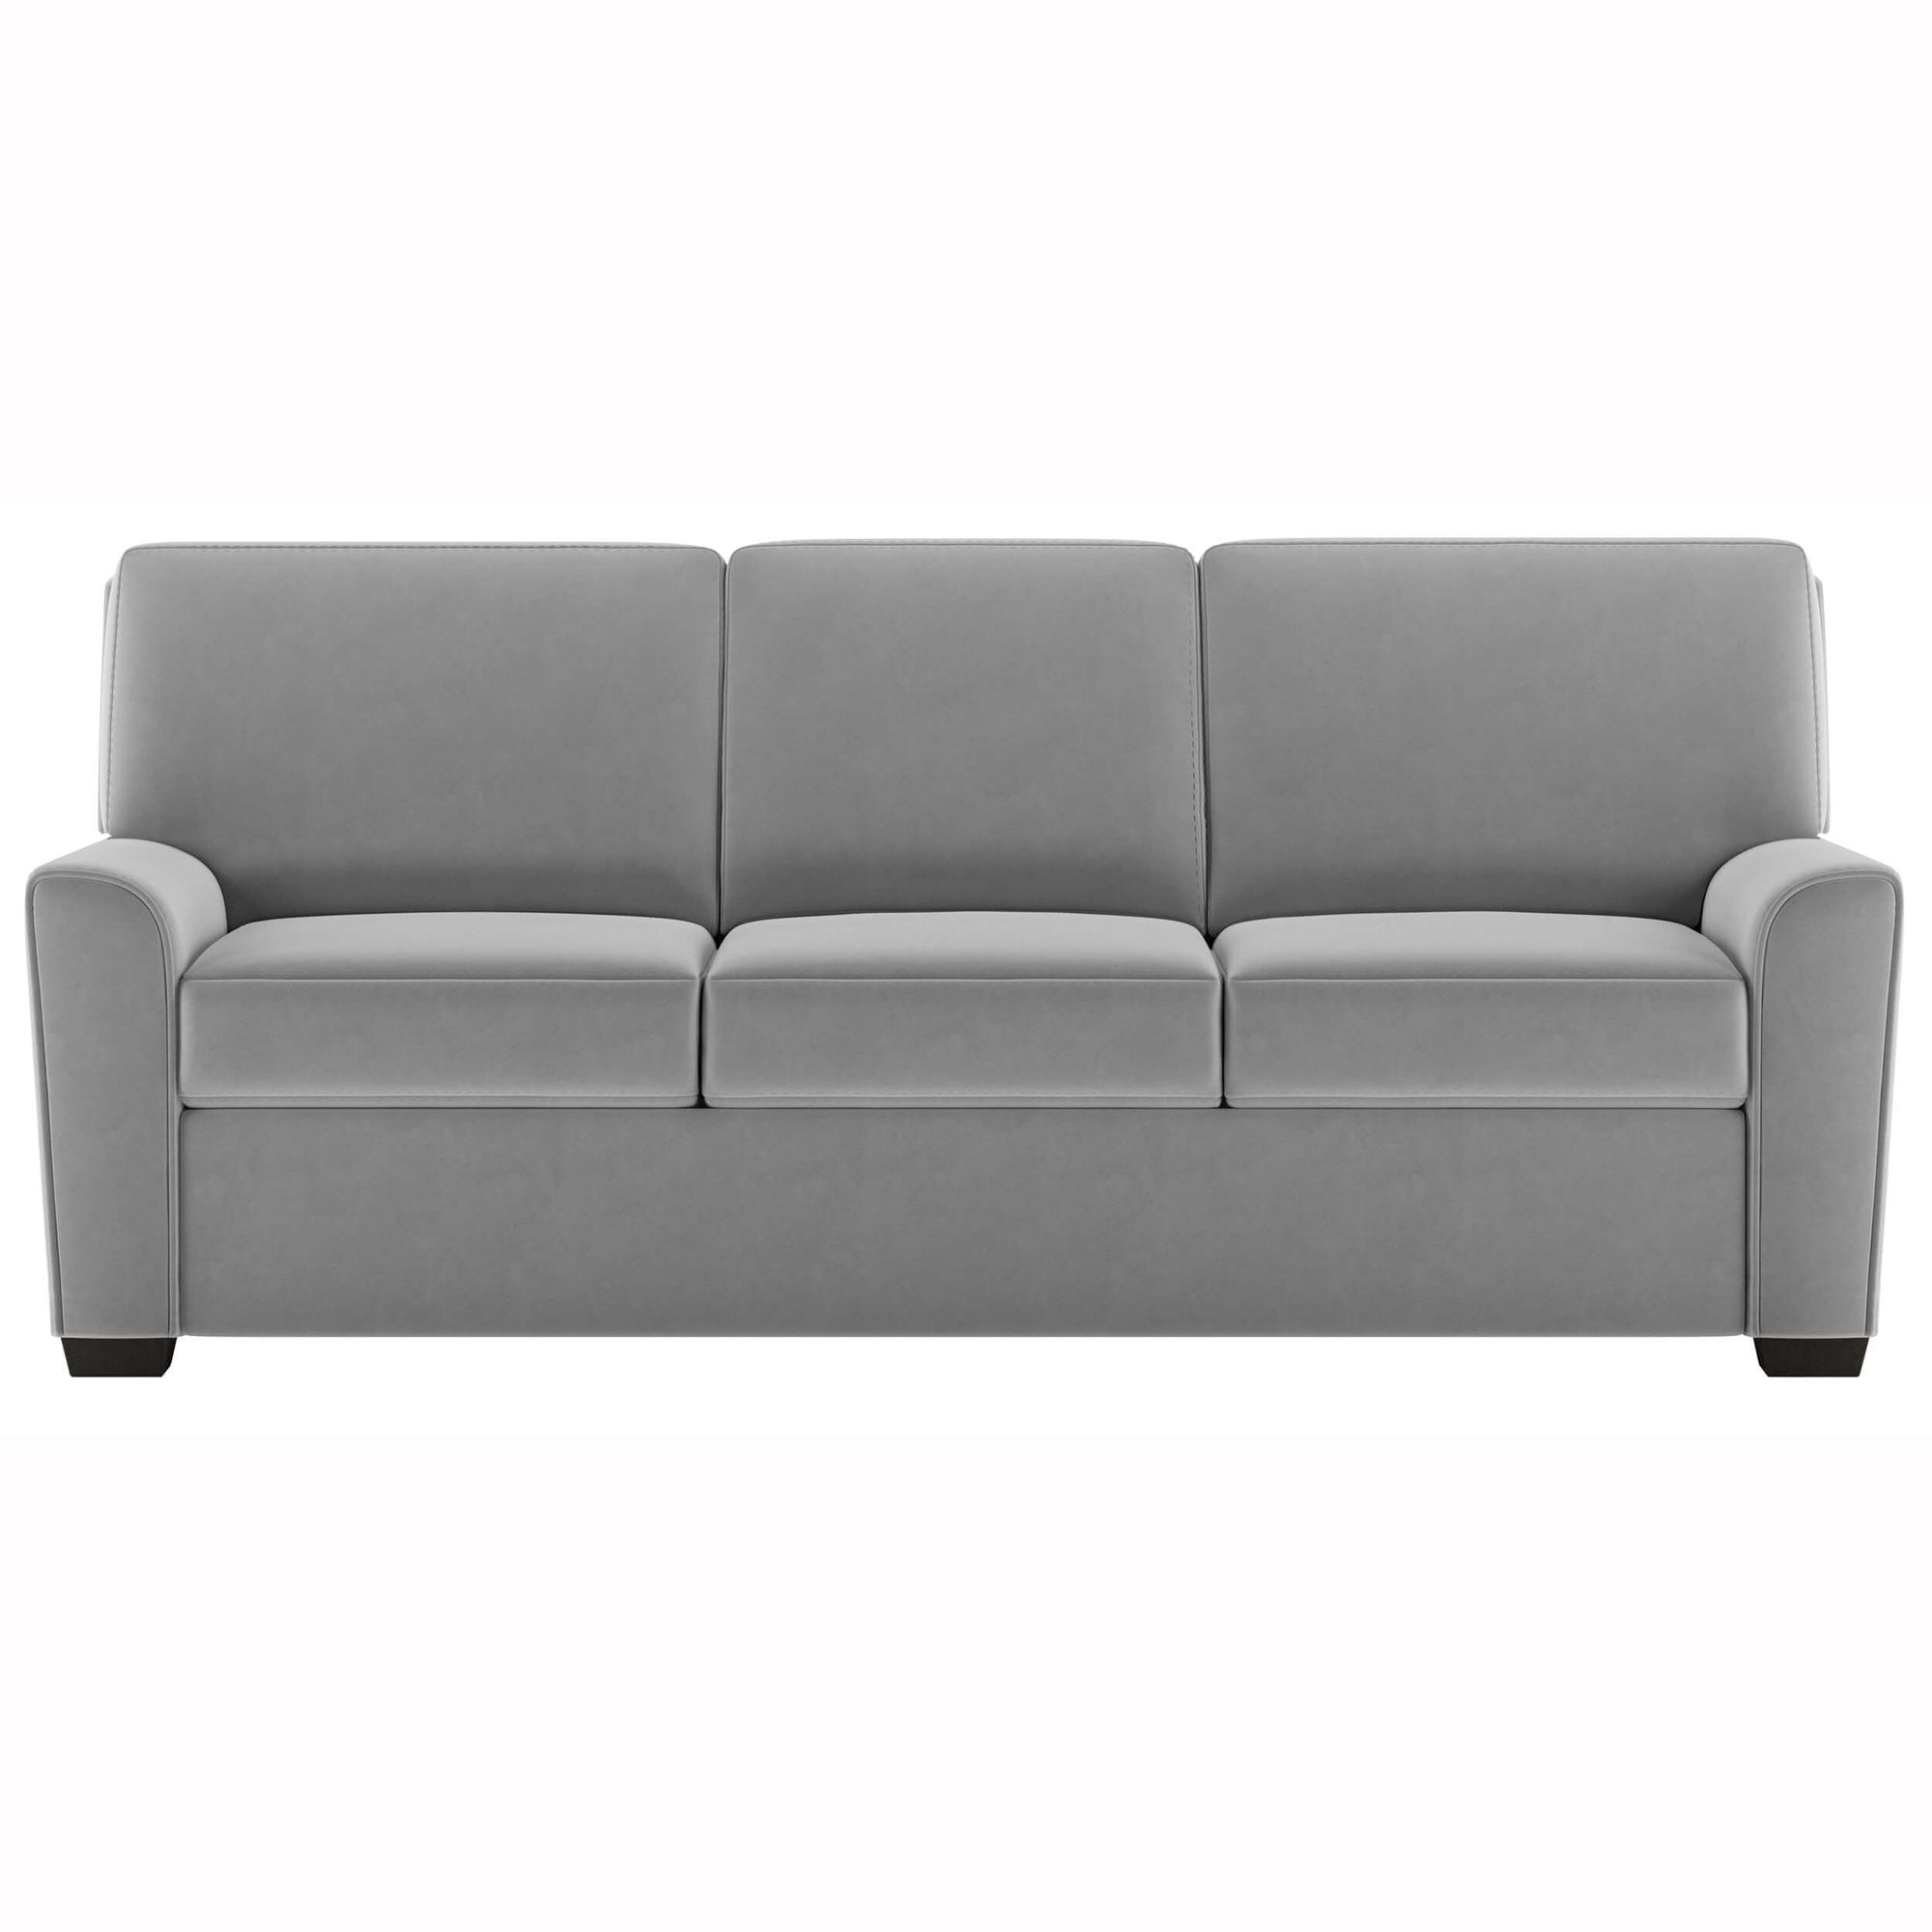 American Leather Klein Queen Sleeper Sofa, Toray Ultrasuede French Gray